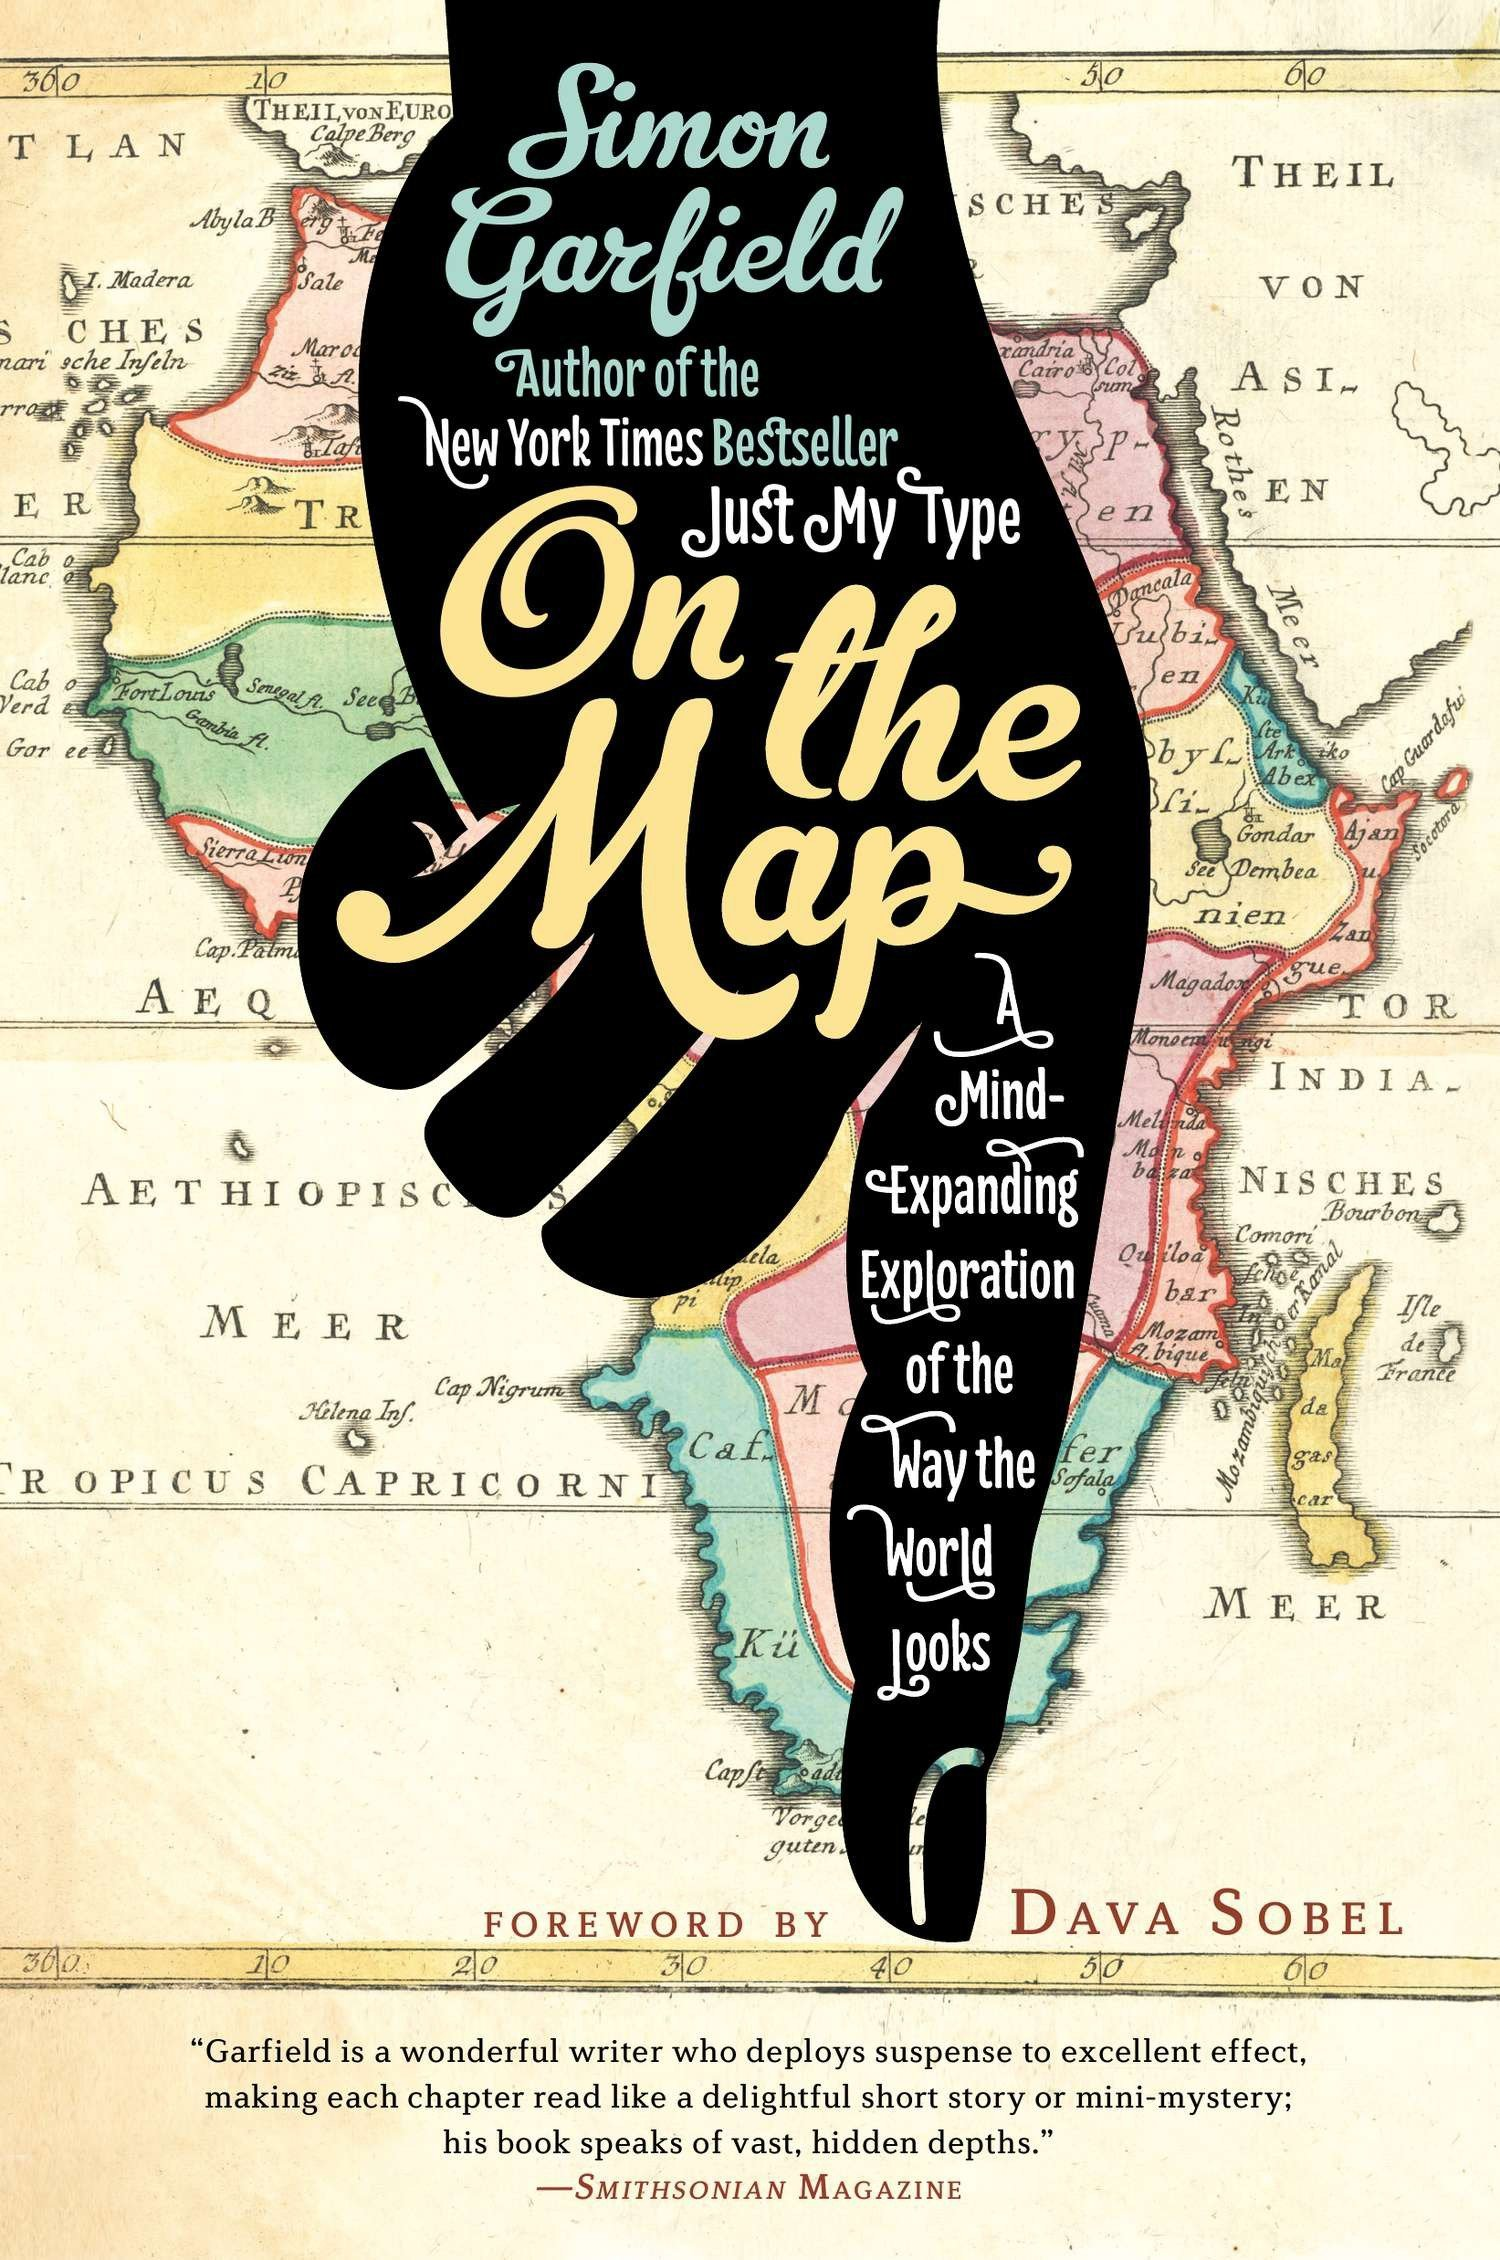 On the Map: A Mind-Expanding Exploration of the Way the World Looks (ALA Notable Books for Adults) Paperback – November 5, 2013 Simon Garfield Avery 1592407803 Atlases